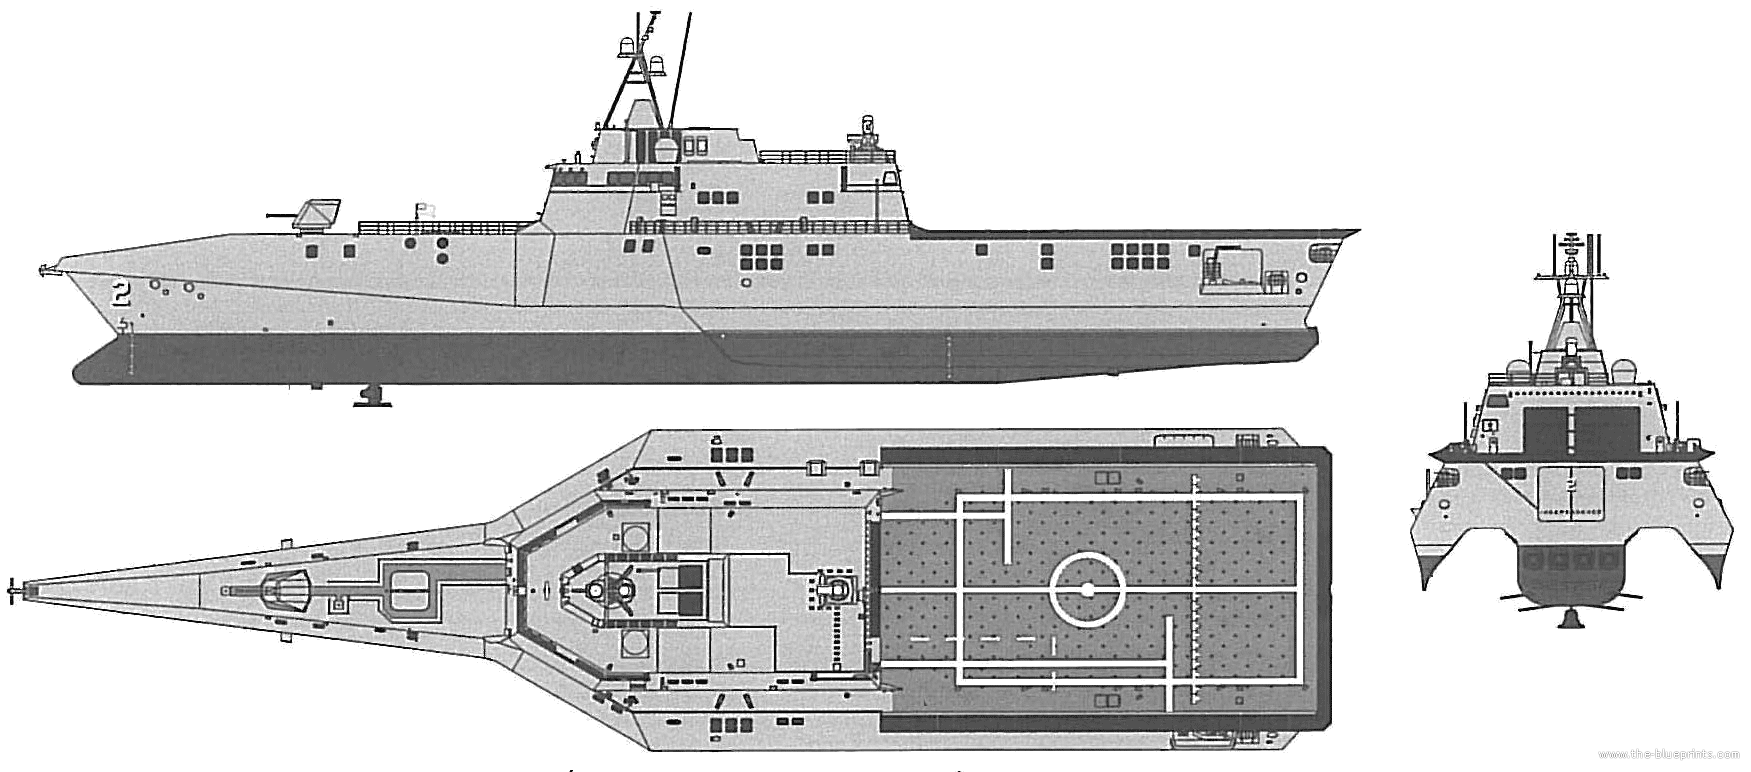 ModernWarshipsoftheWorld The World of WarshipsModern Battleship Design